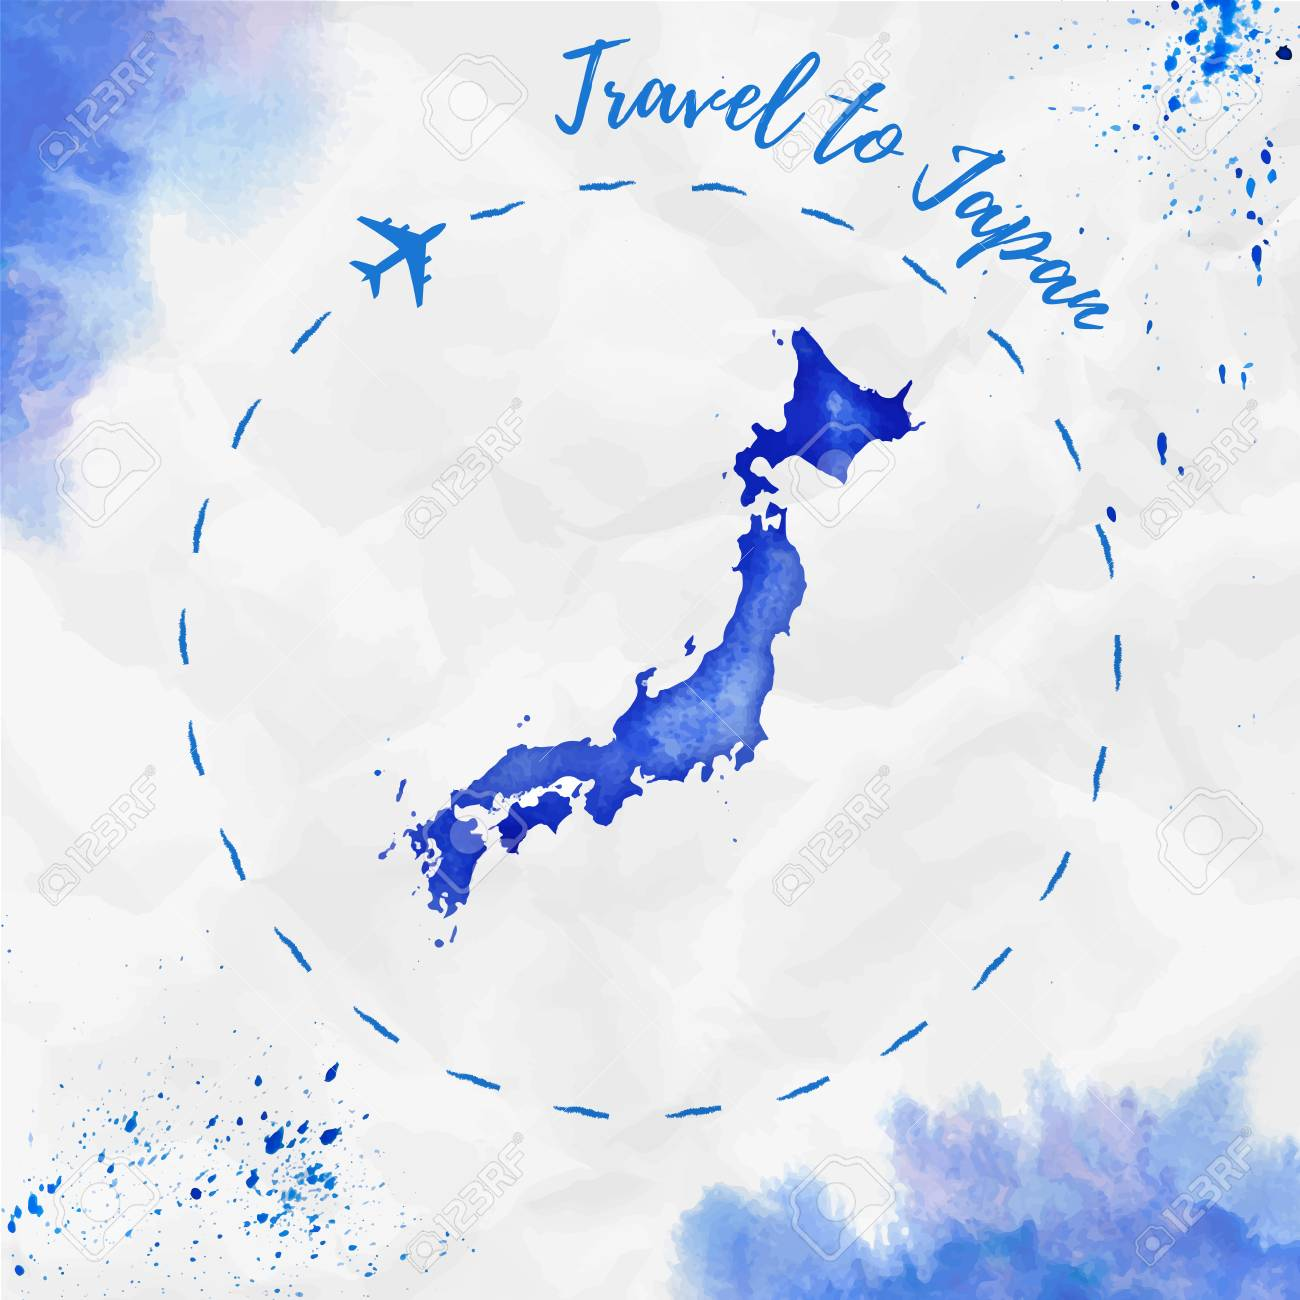 Japan Watercolor Map In Blue Colors Travel To Japan Poster With Royalty Free Cliparts Vectors And Stock Illustration Image 78135423